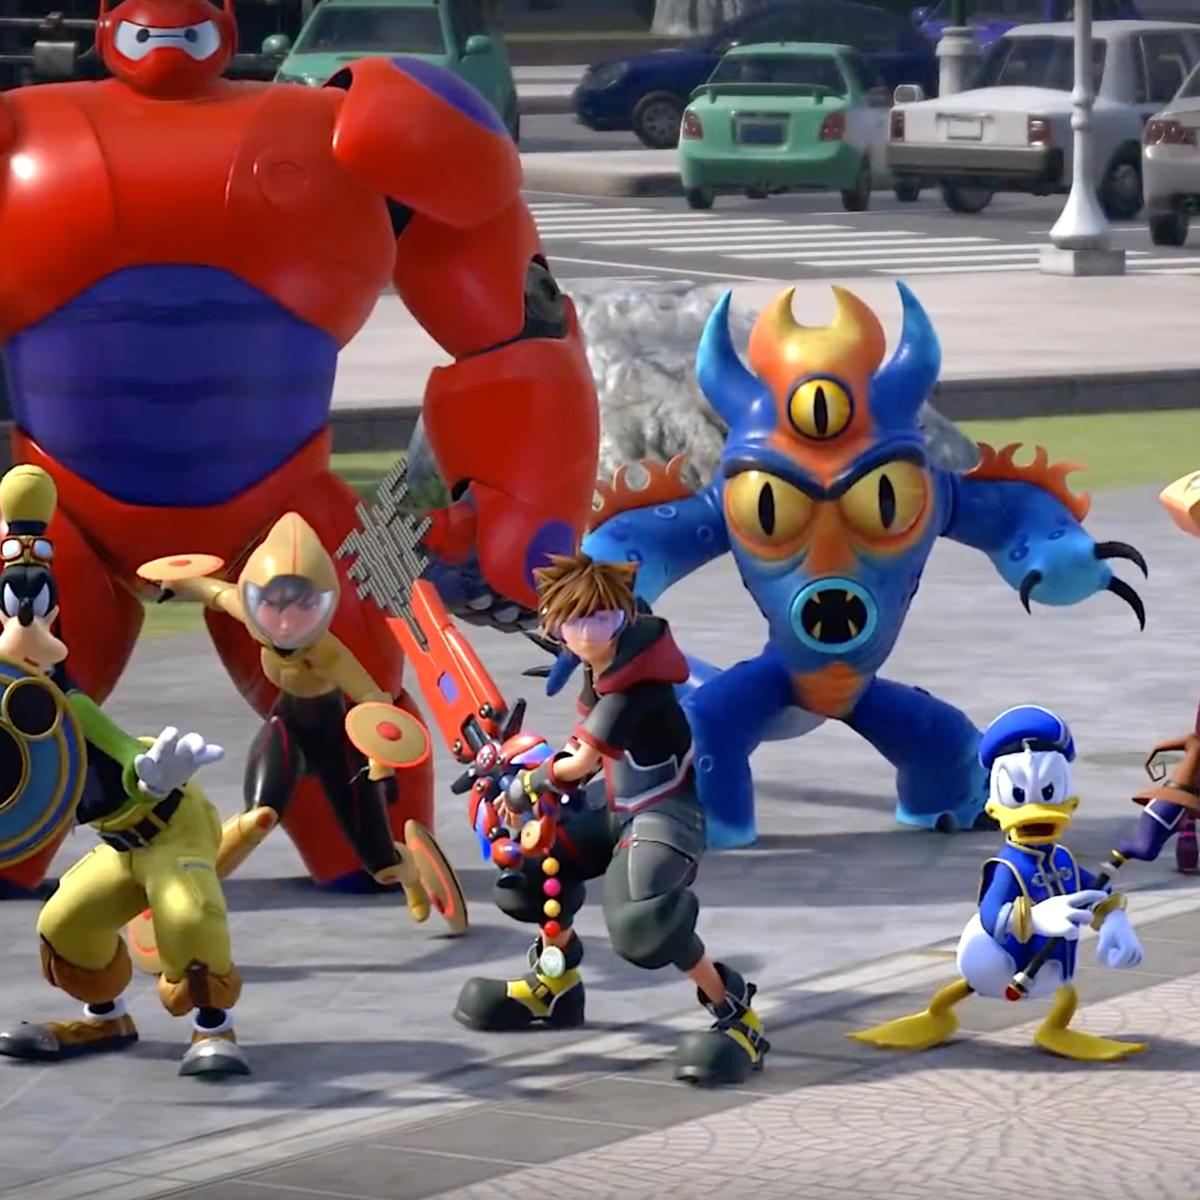 Get Together with Kingdom Hearts III Latest Trailer